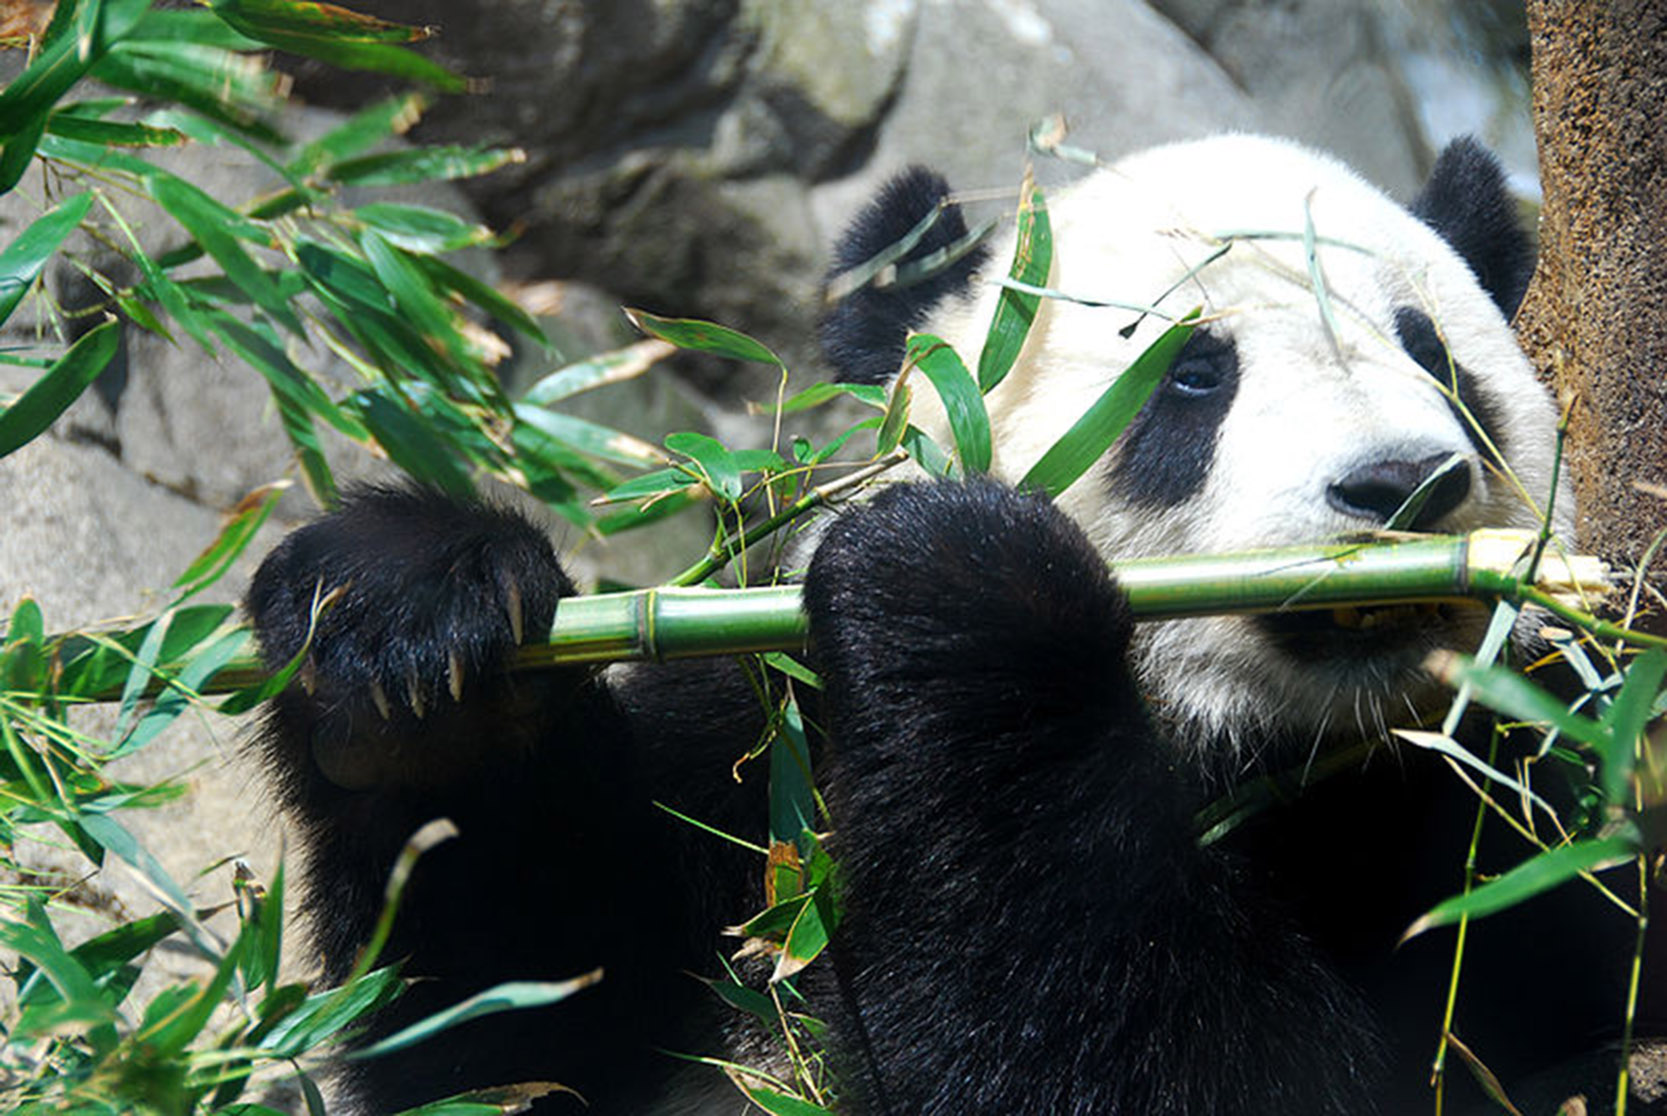 Giant Panda Tai Shan Chengdu China